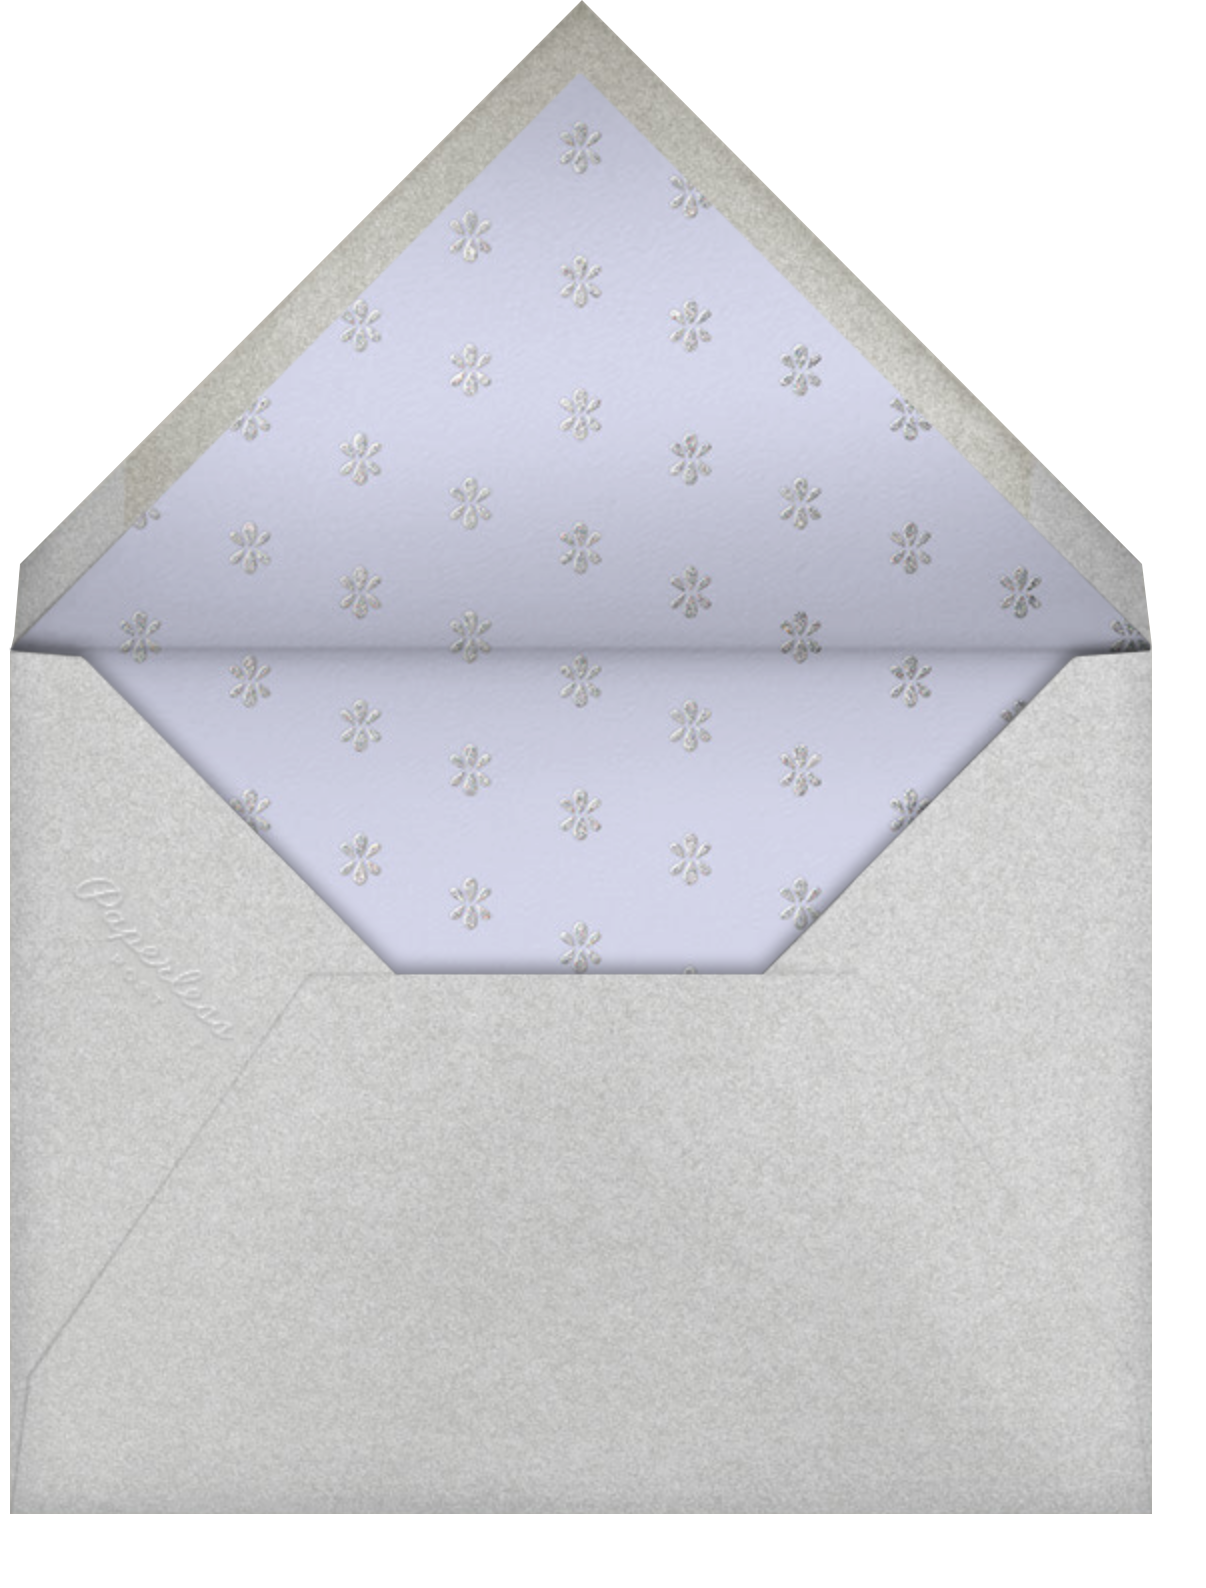 Ornate Occasion Photo - Forget-Me-Not - Paperless Post - Quinceañera - envelope back